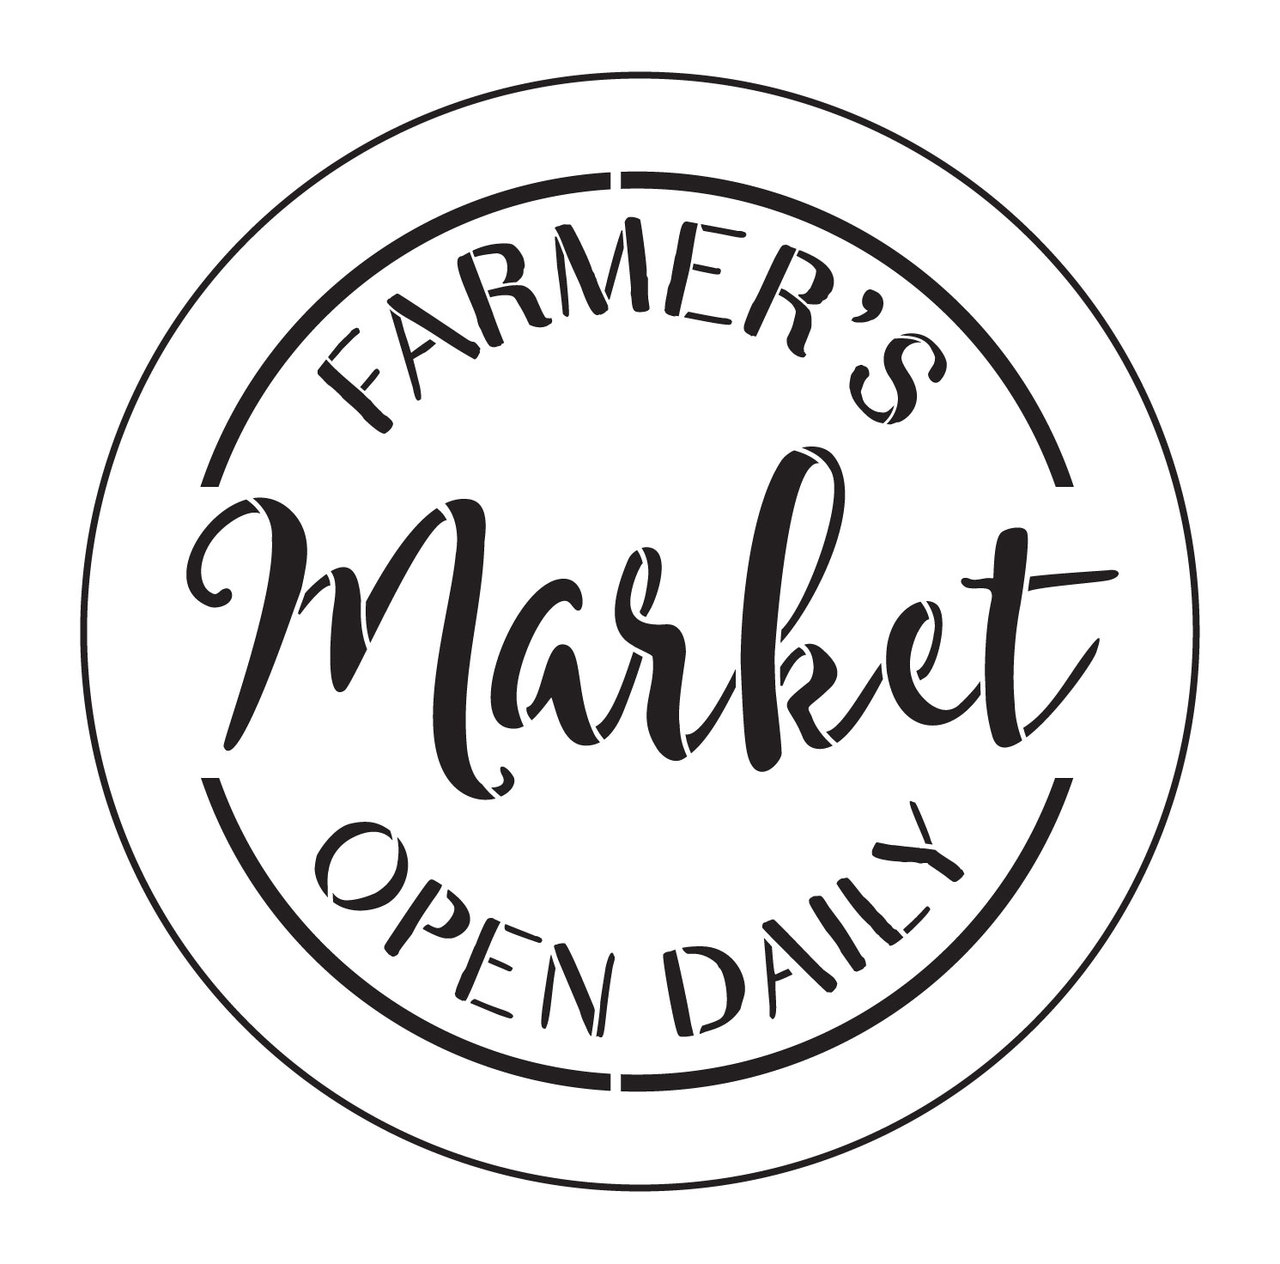 "Farmer's Market Open Daily Stencil by StudioR12 - Country Word Art - 8"" Round - STCL2456_1"